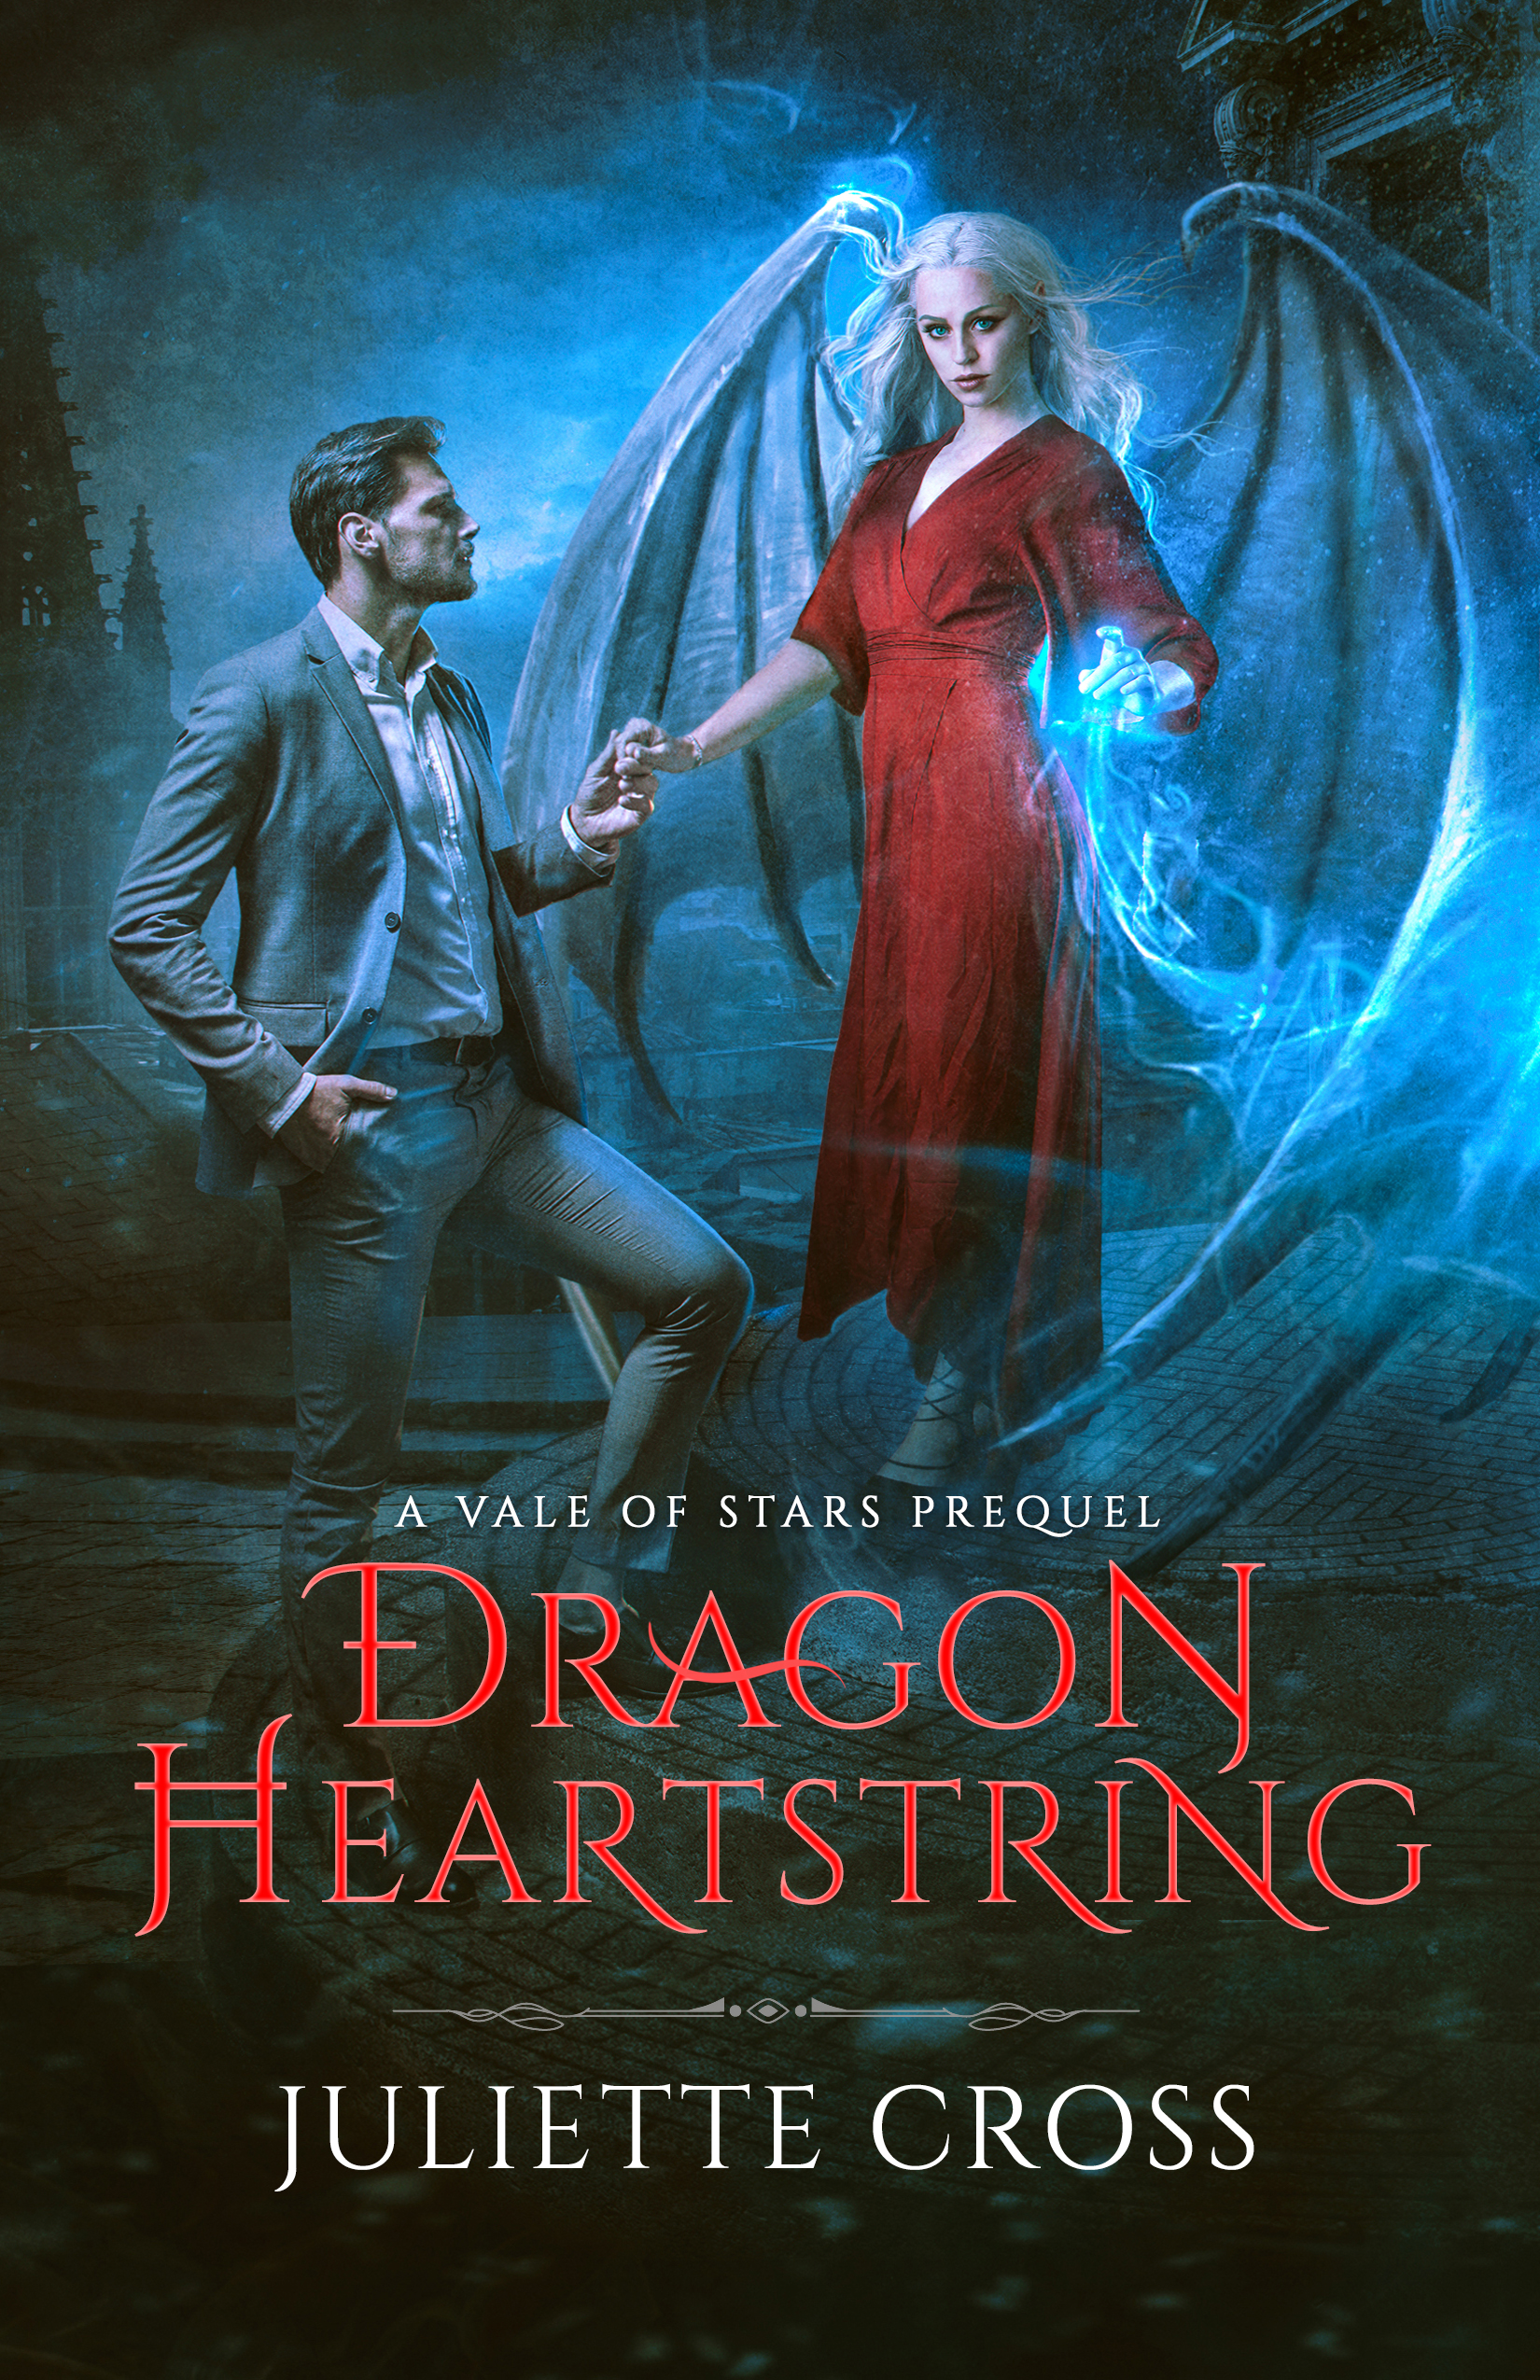 Dragon Heartstring